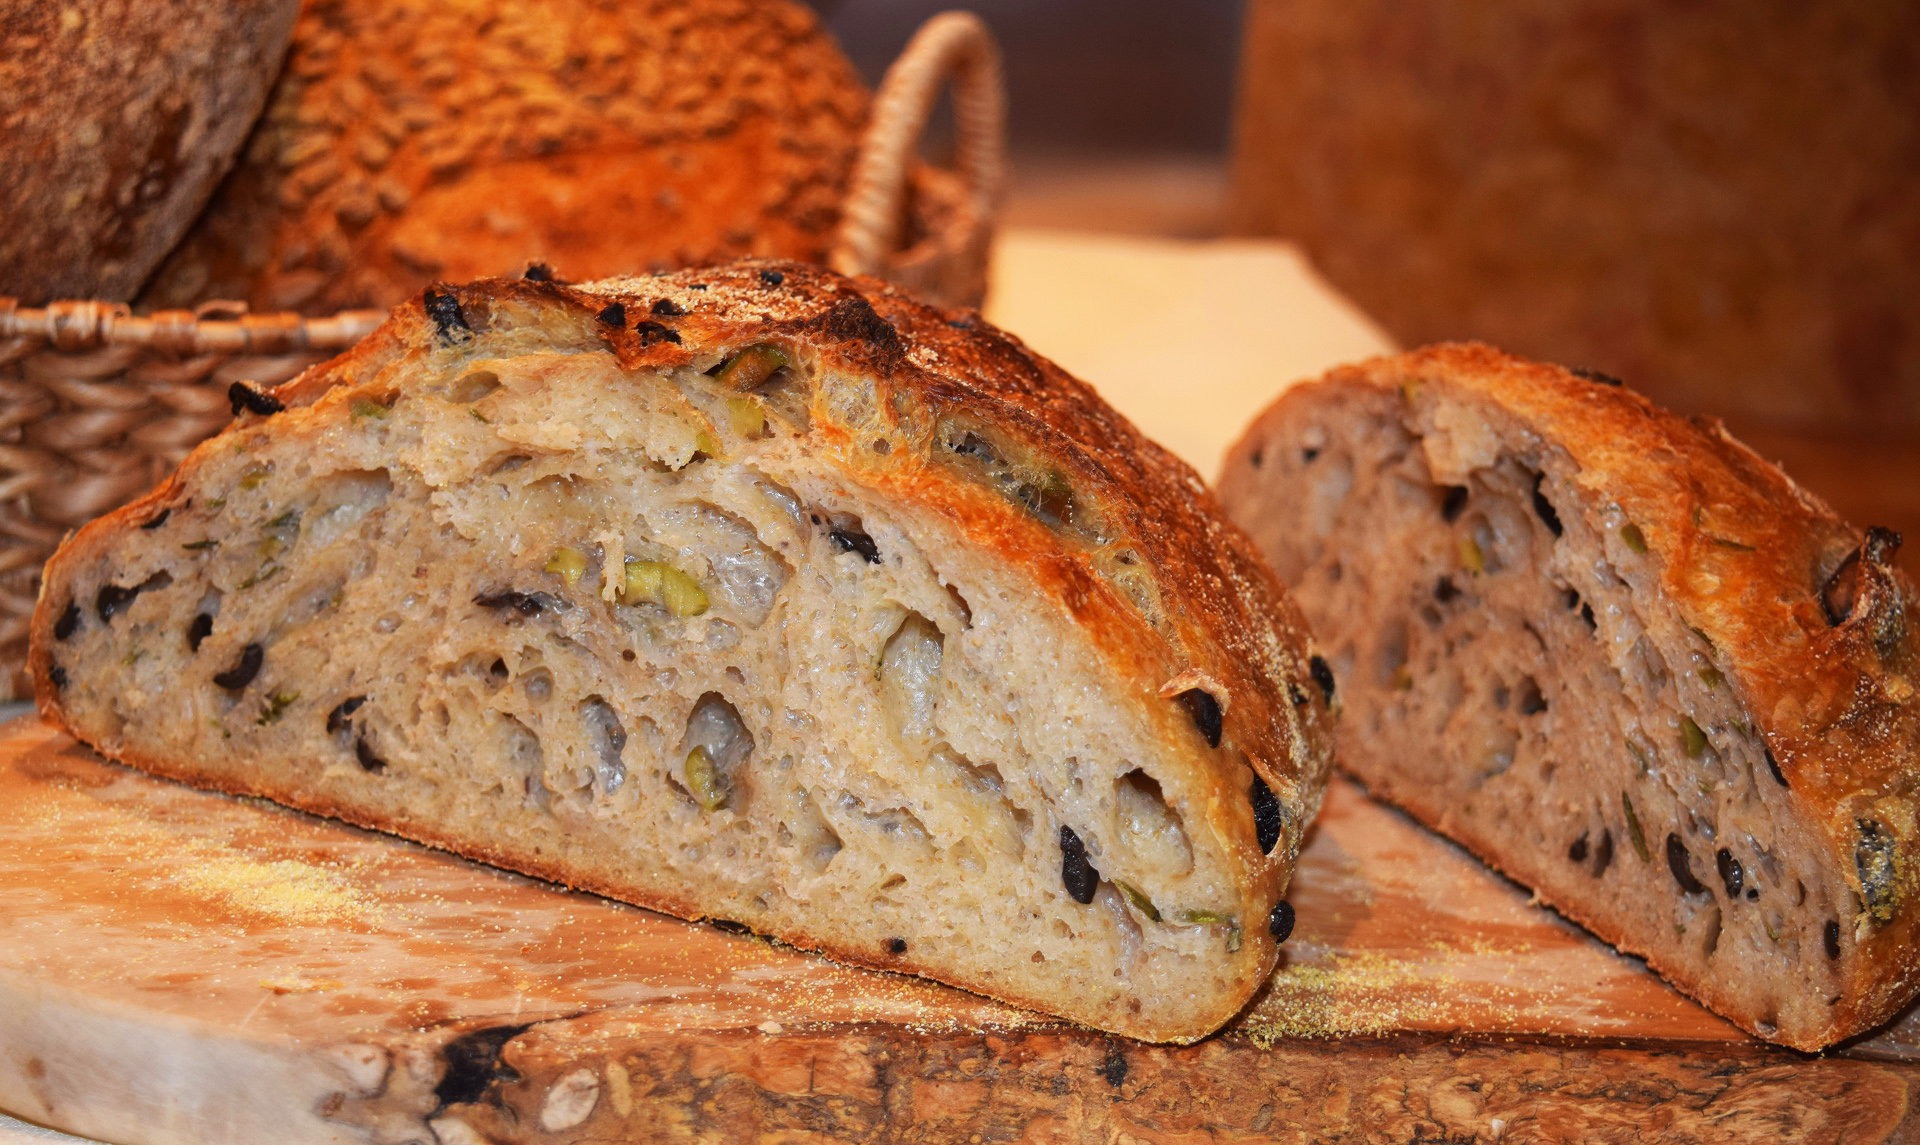 The outstanding rosemary olive bread is tangy and flavorful, with subtle hints of rosemary and two kinds of olives, black and green.